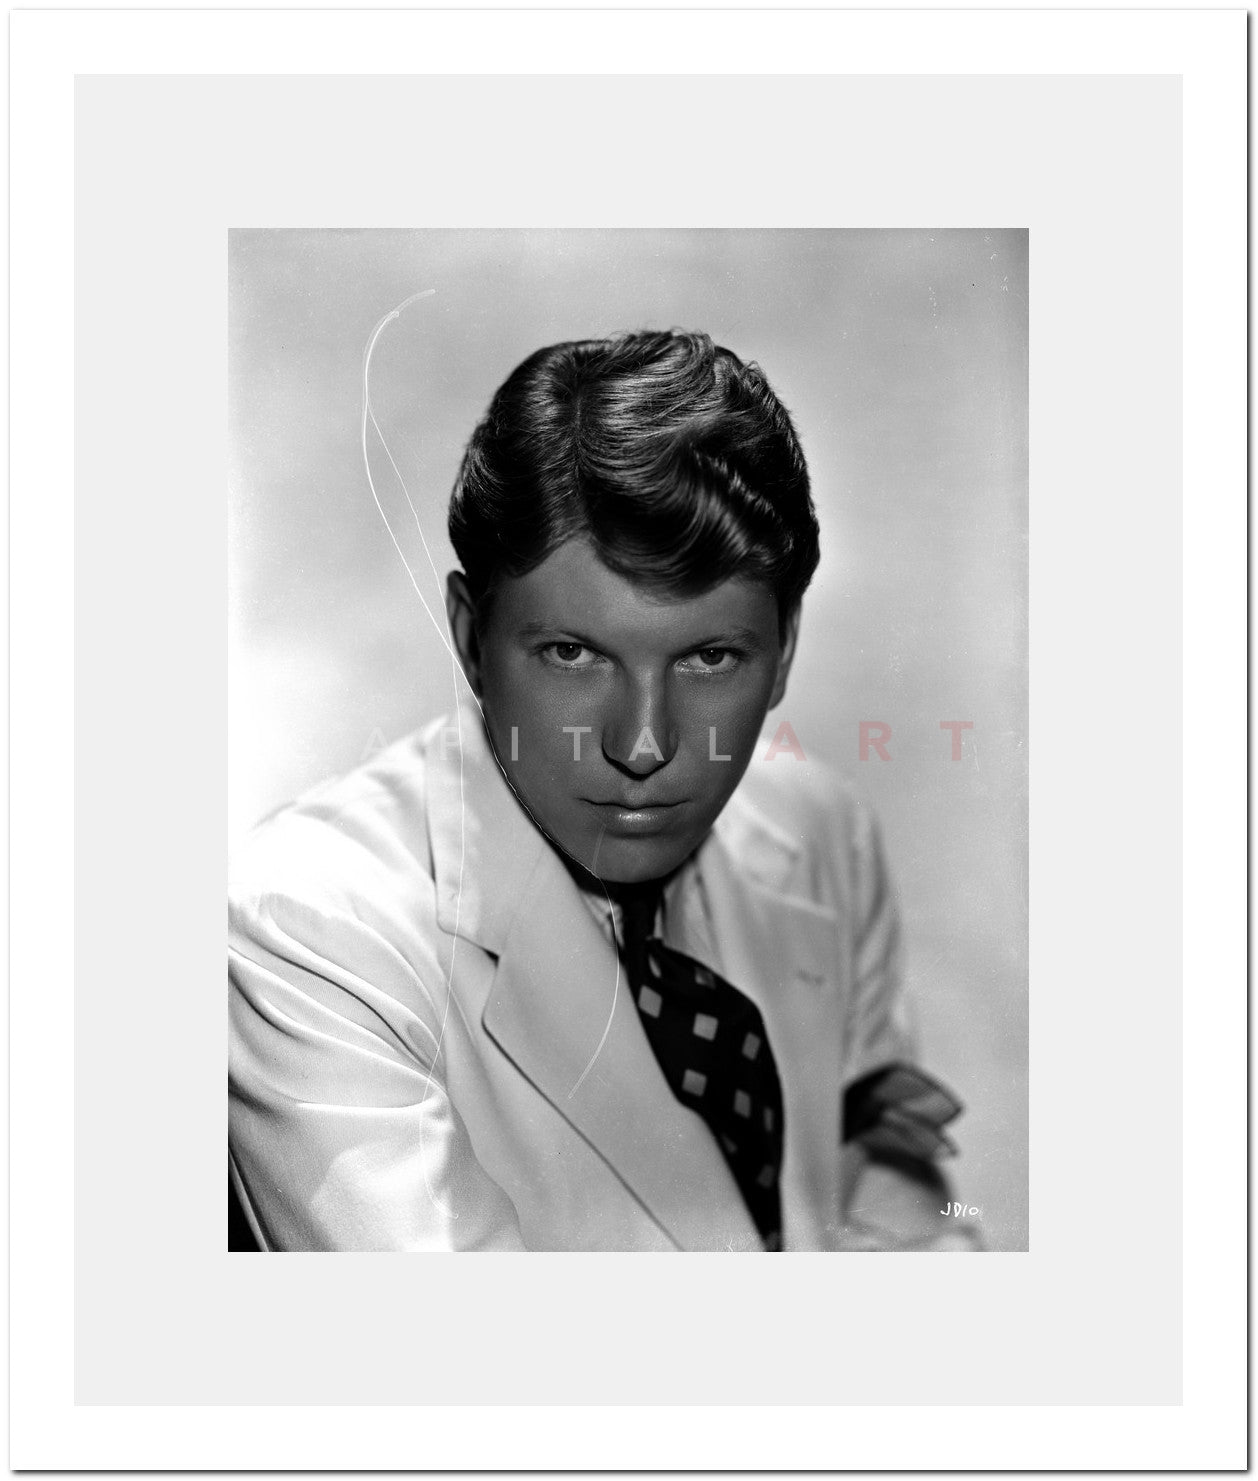 Johnny Davis Posed in White Tuxedo With White Background Premium